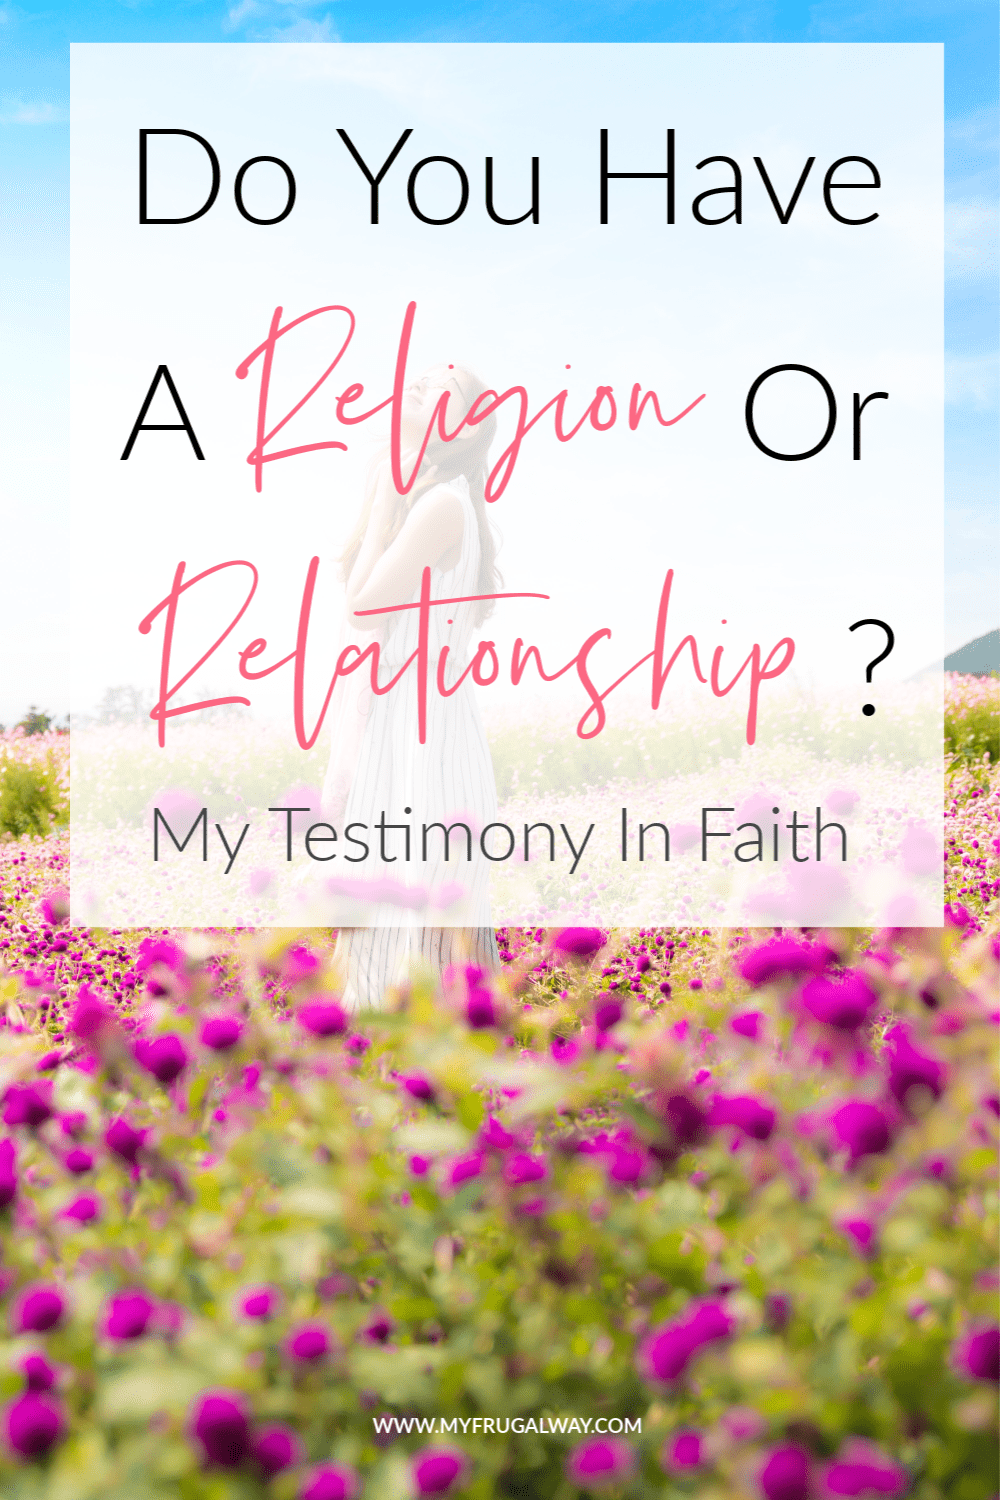 Jesus wants a personal relationship with you over religion. My testimony of faith in Christ . Build a relationship with god,religion sets rules but Jesus sets you free.